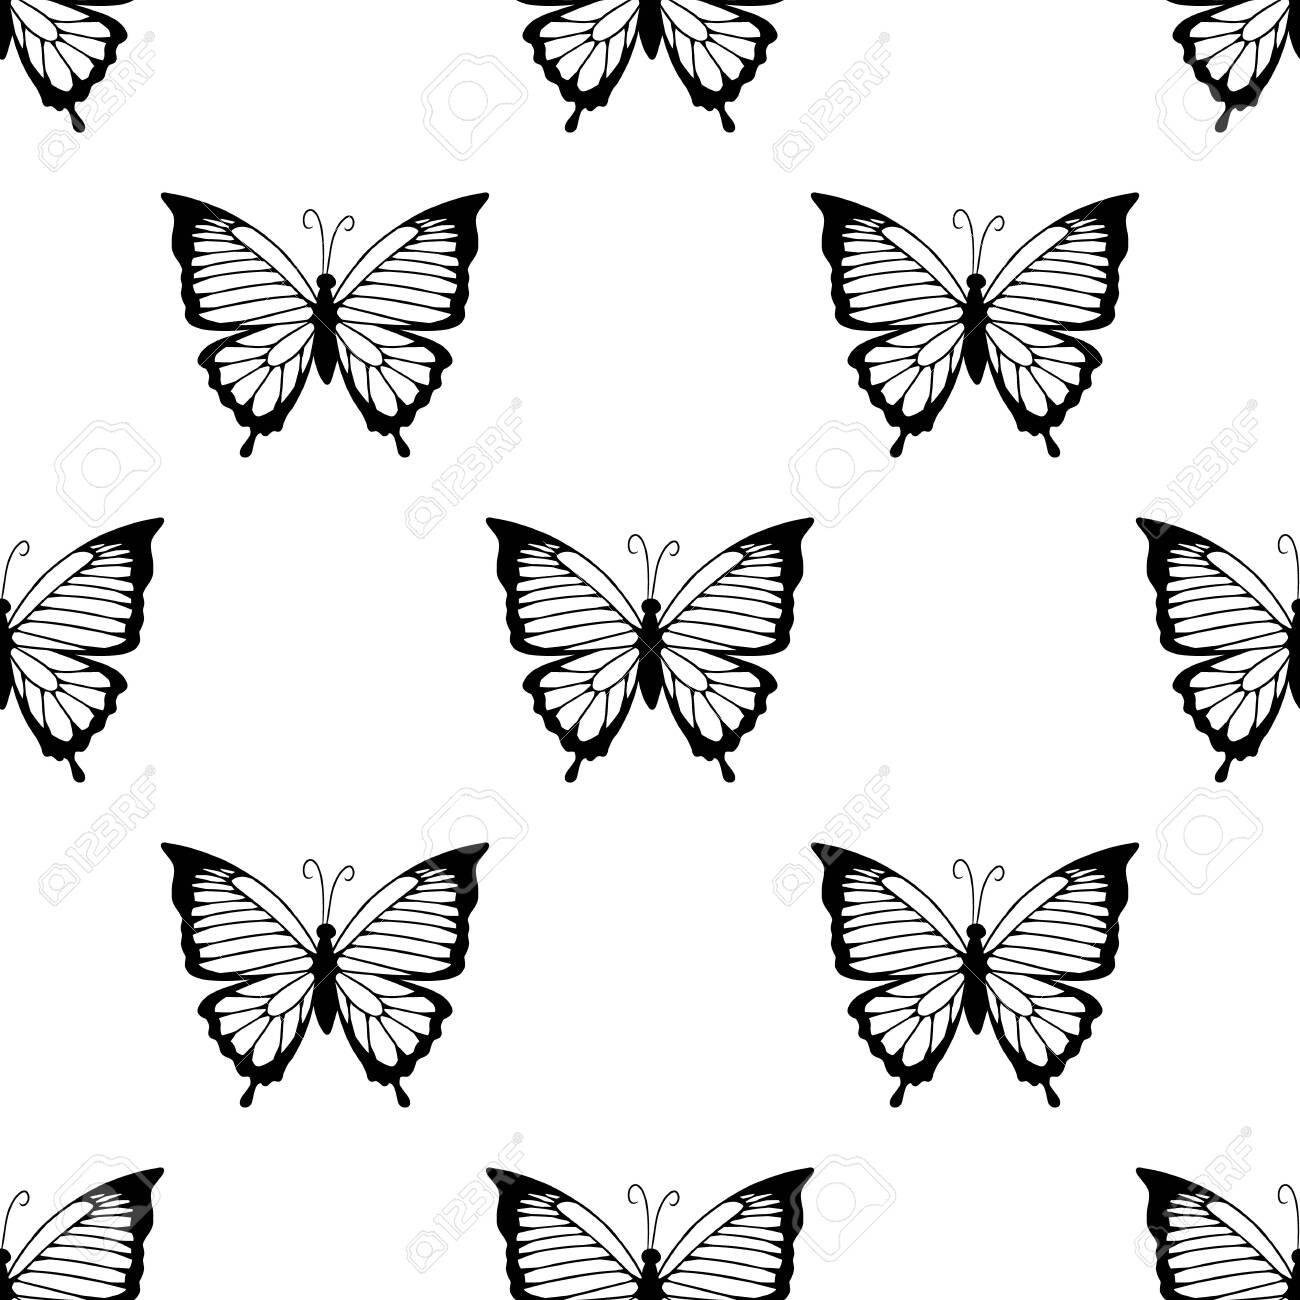 photo stock vector butterfly black silhouettes seamless border pattern isolated in white background vector wallpaper ba